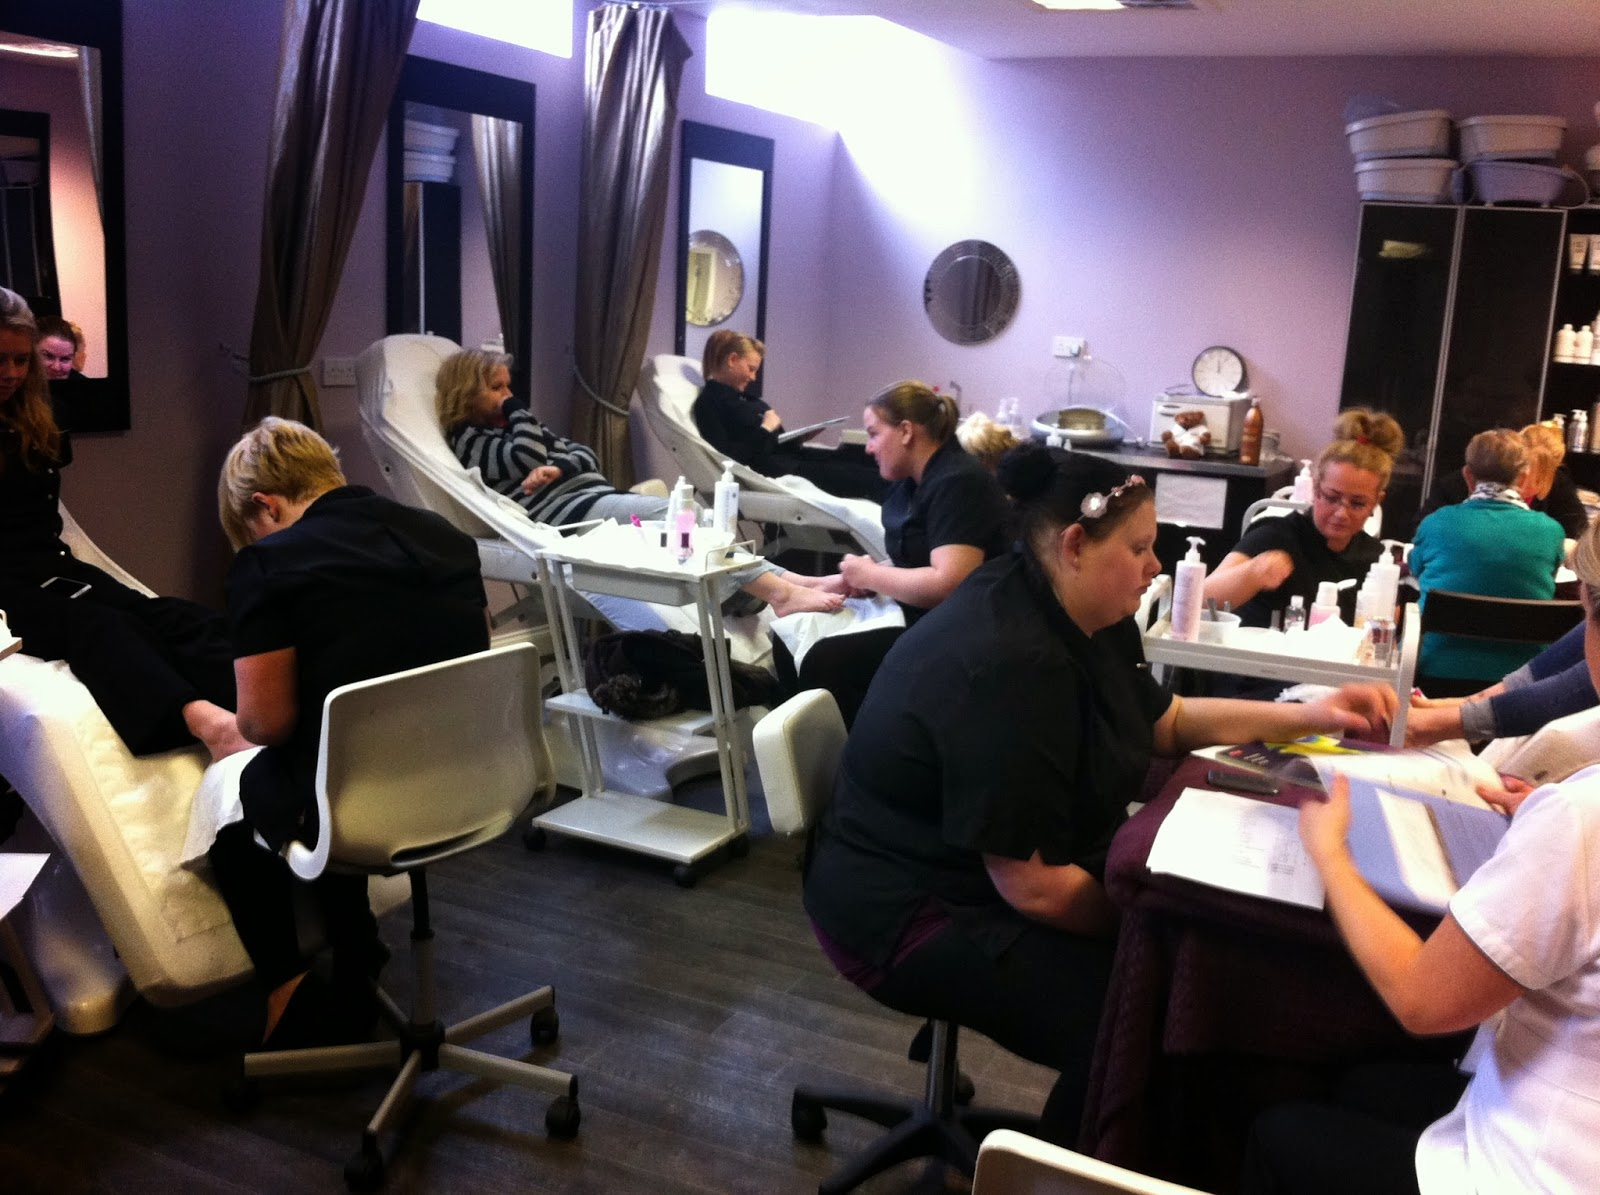 Ald hair beauty and barbering busy day at the academy for Academy beauty salon